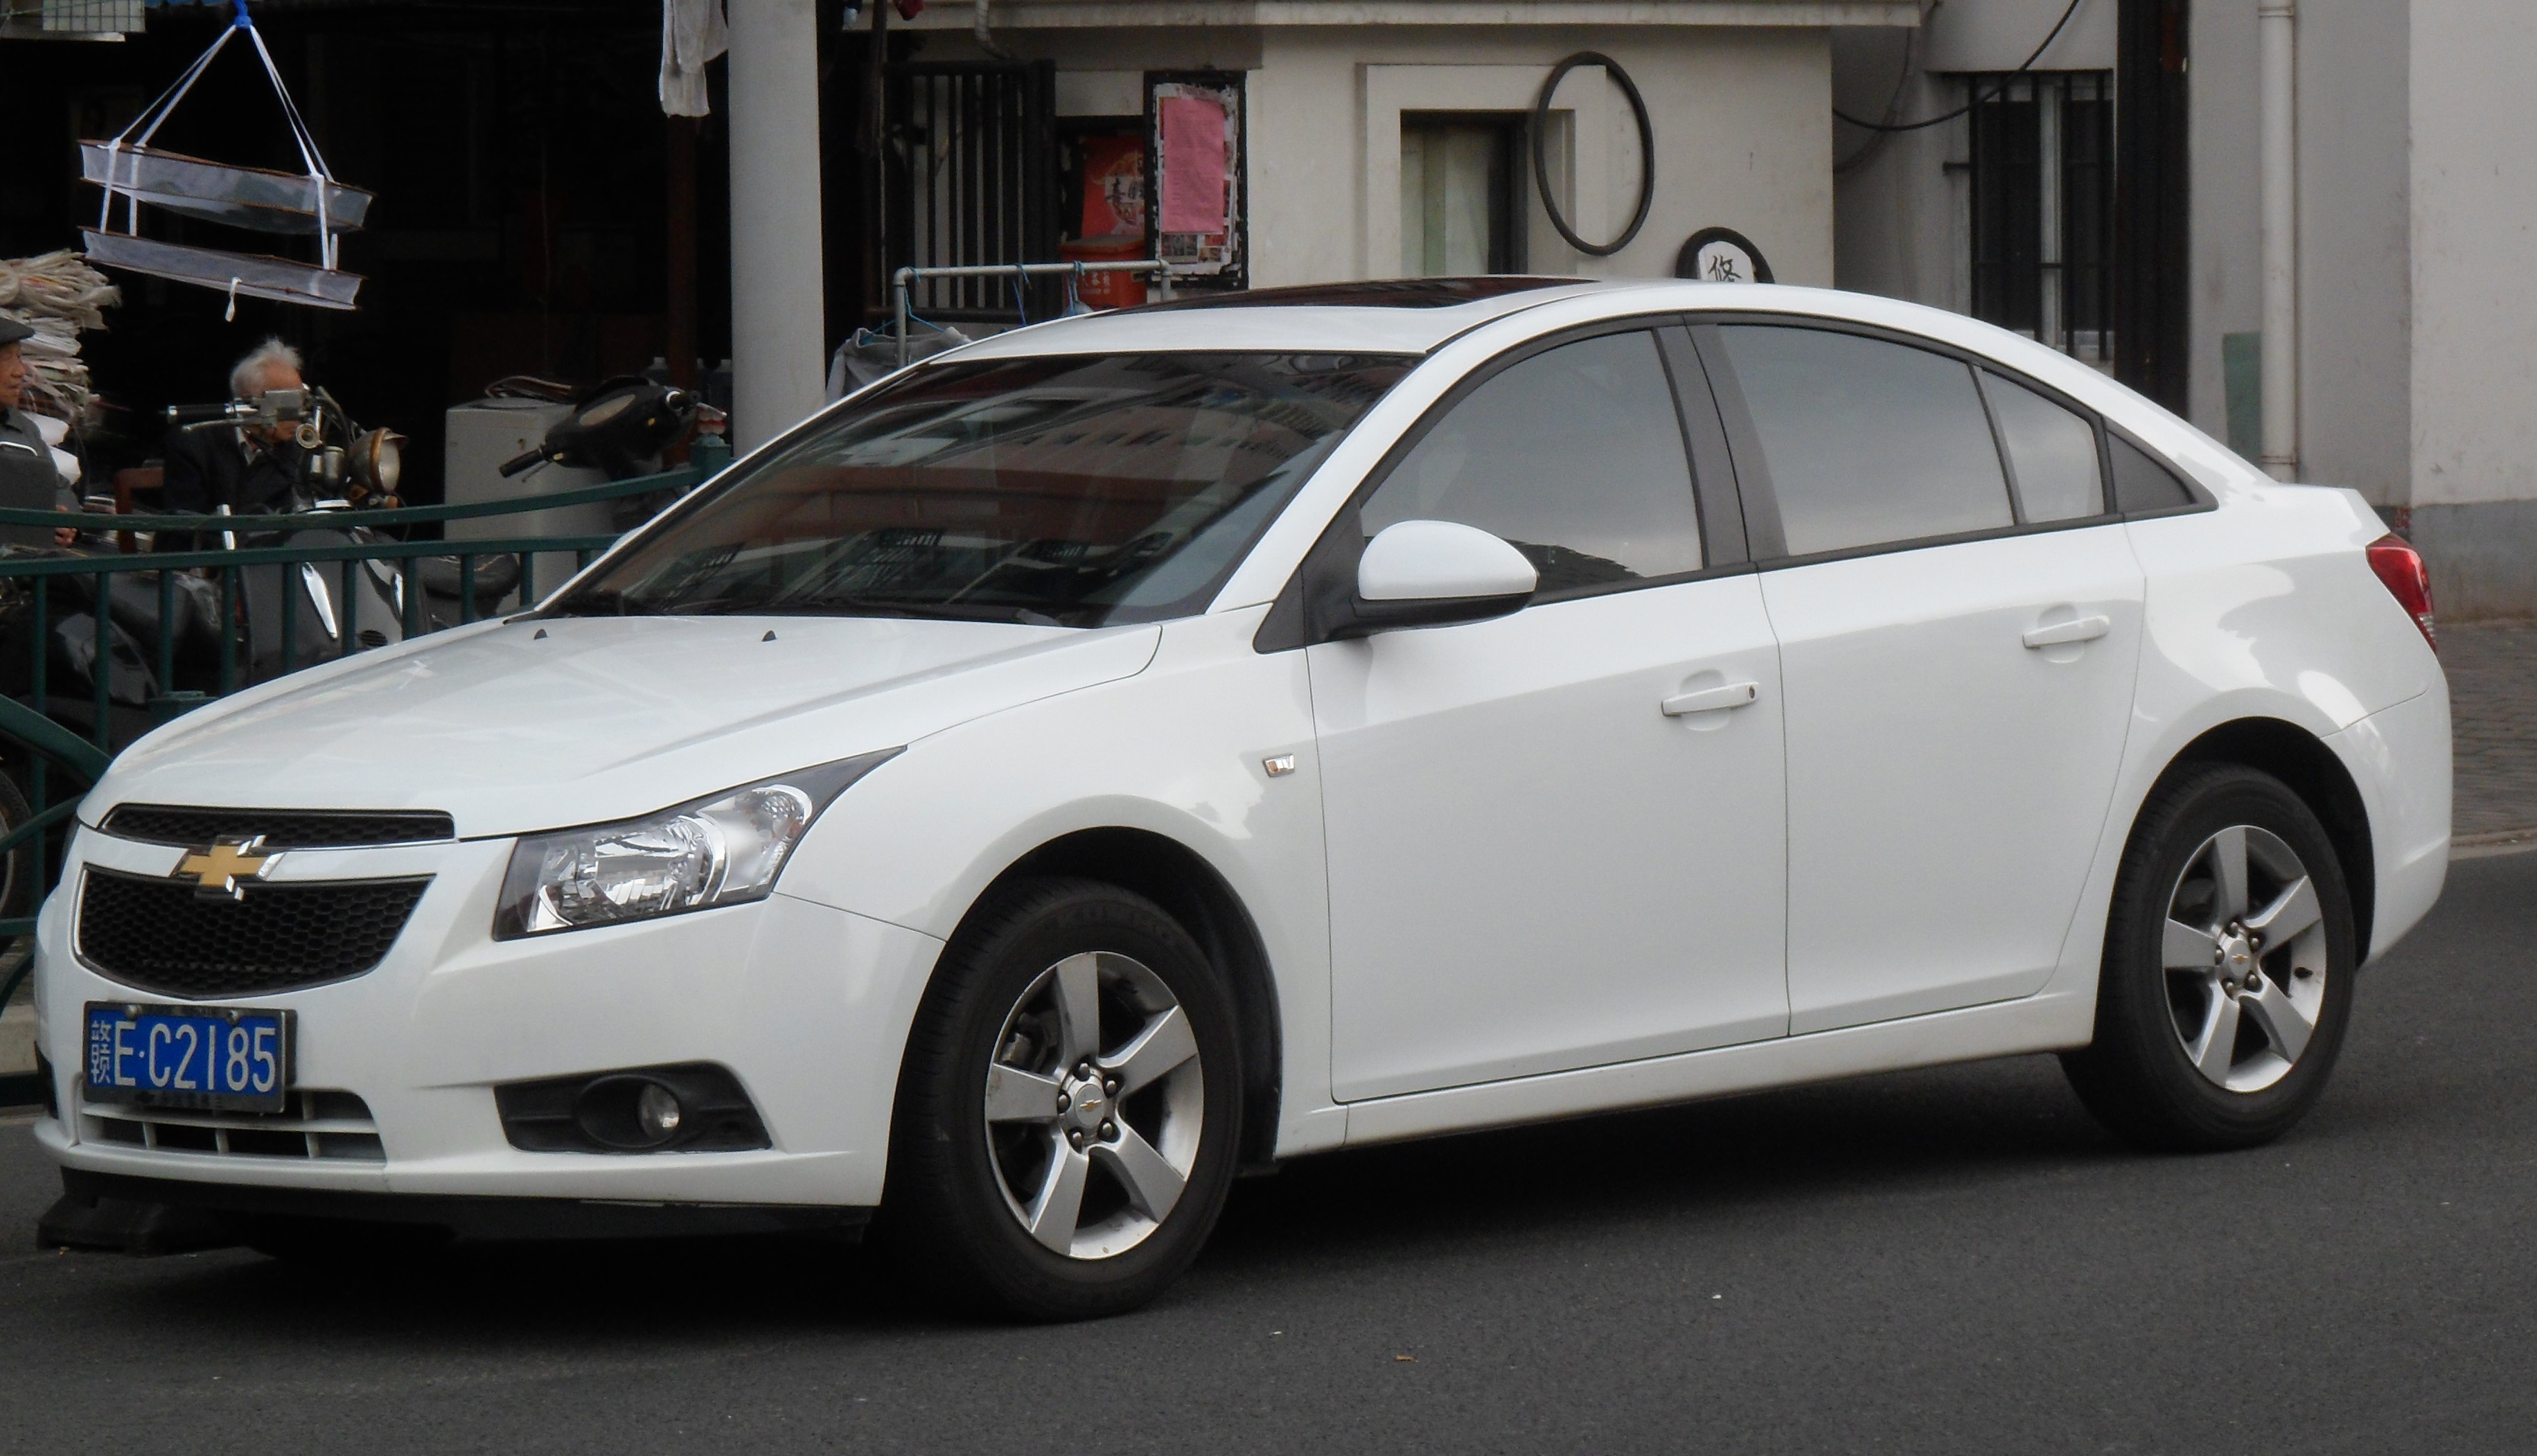 Chevrolet Cruze China 2012 Wallpaper For Ios